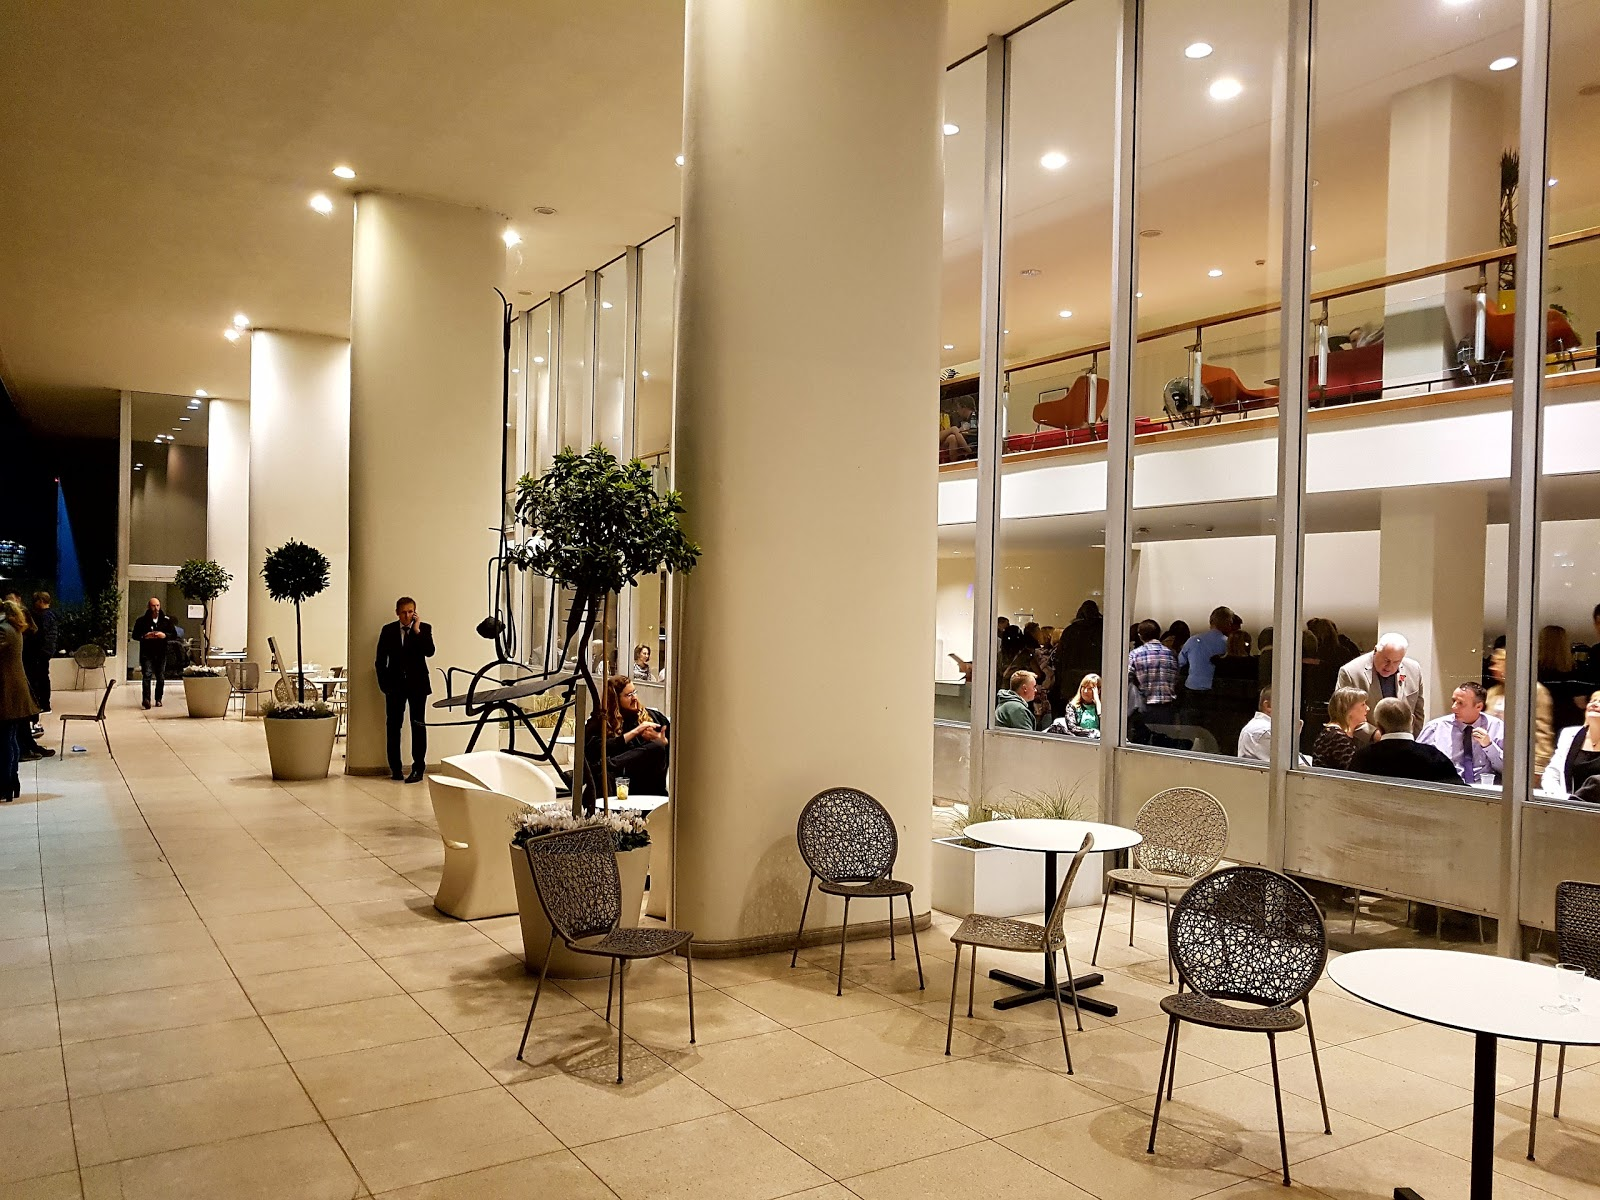 Royal Festival Hall: A Work-Friendly Place in London